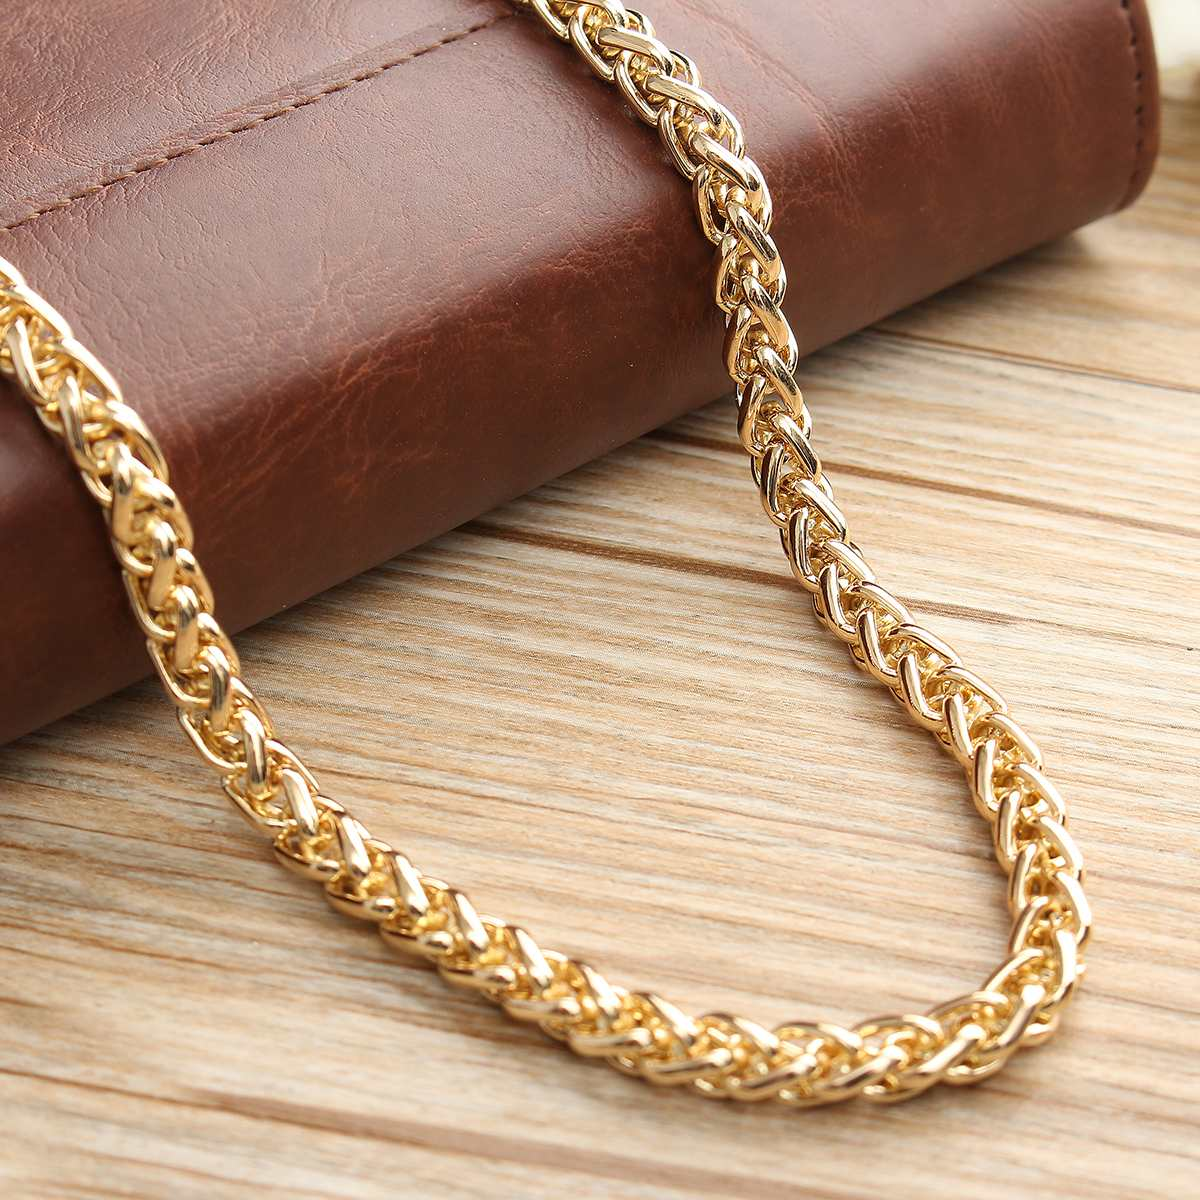 100cm Chain Straps Metal DIY Bag Accessories Parts Stainless Steel Crossbody Bag Strap Replacement Strap Long Belts Bands